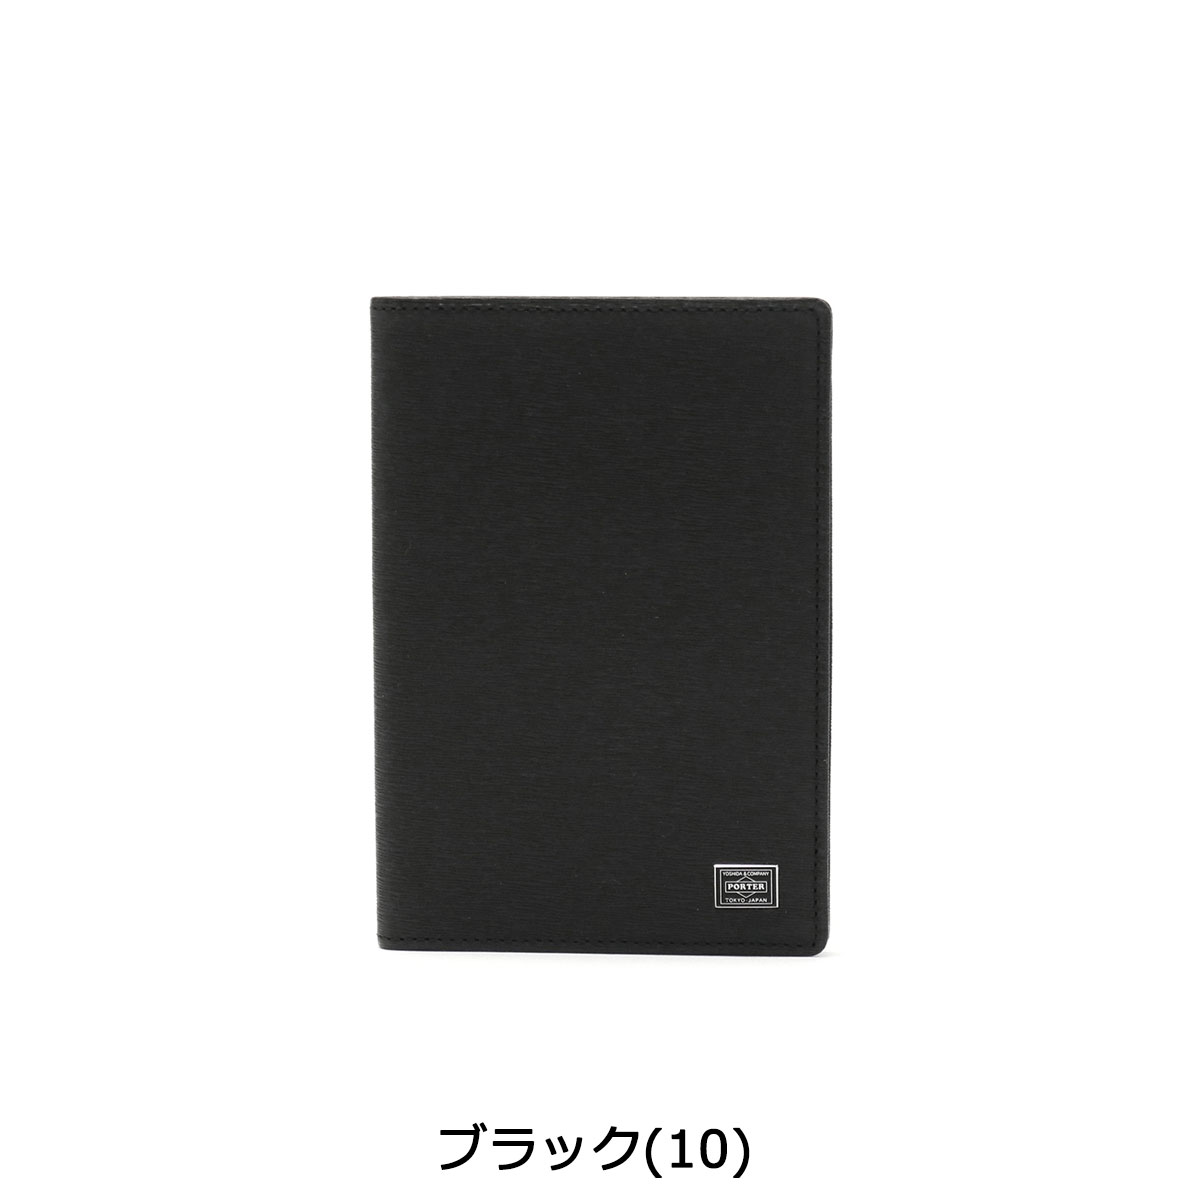 New YOSHIDA PORTER CURRENT PASSPORT CASE 052-02213 Navy With tracking From Japan